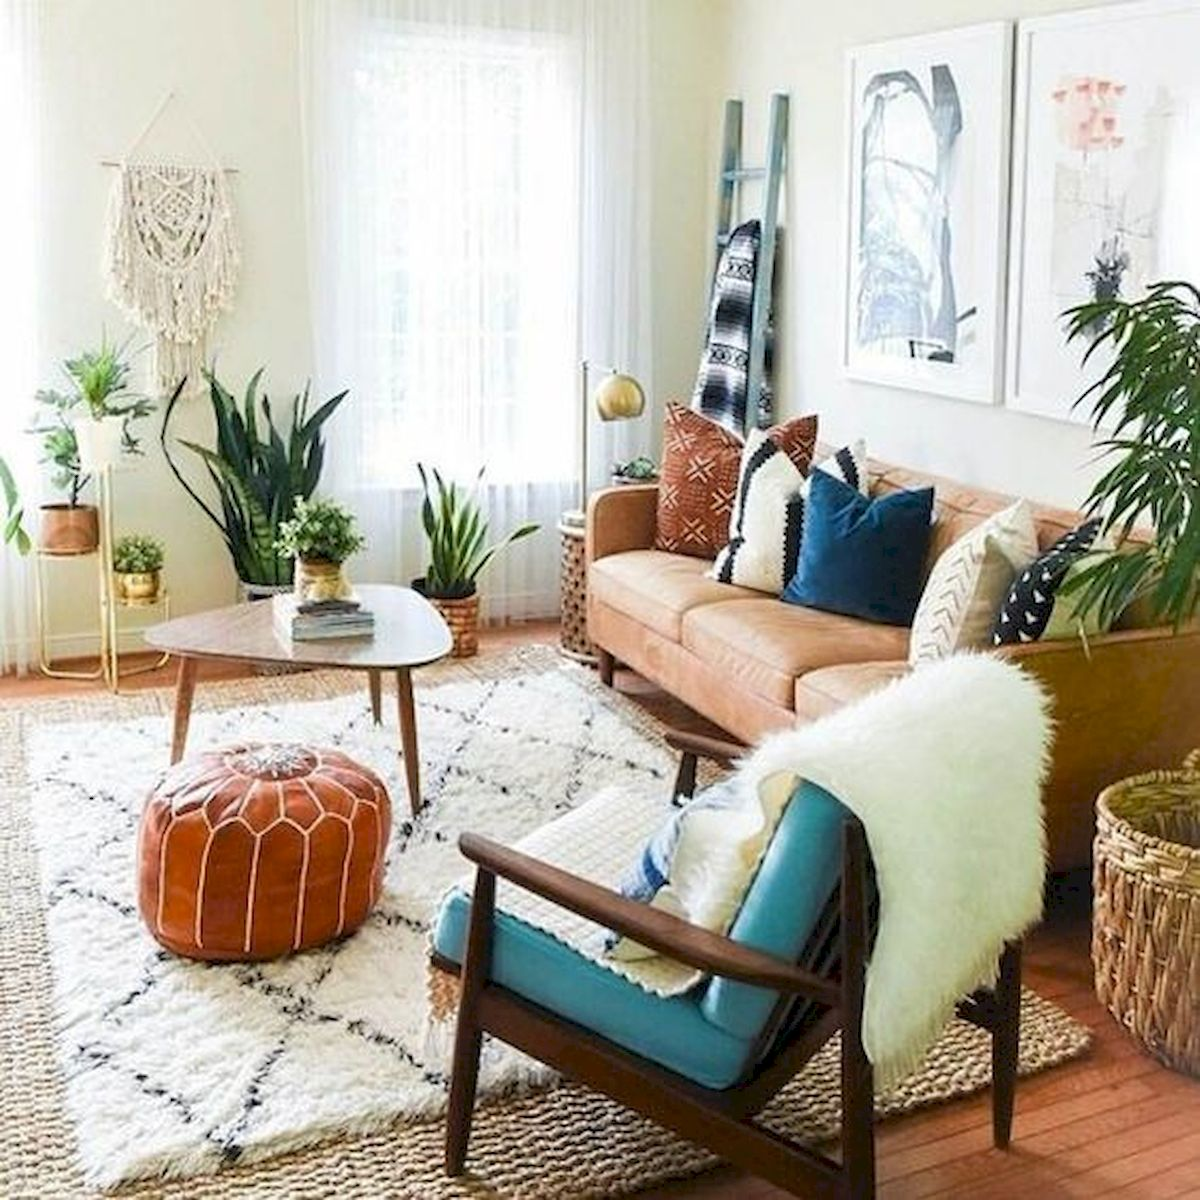 55 Bohemian Living Room Decor Ideas (6)